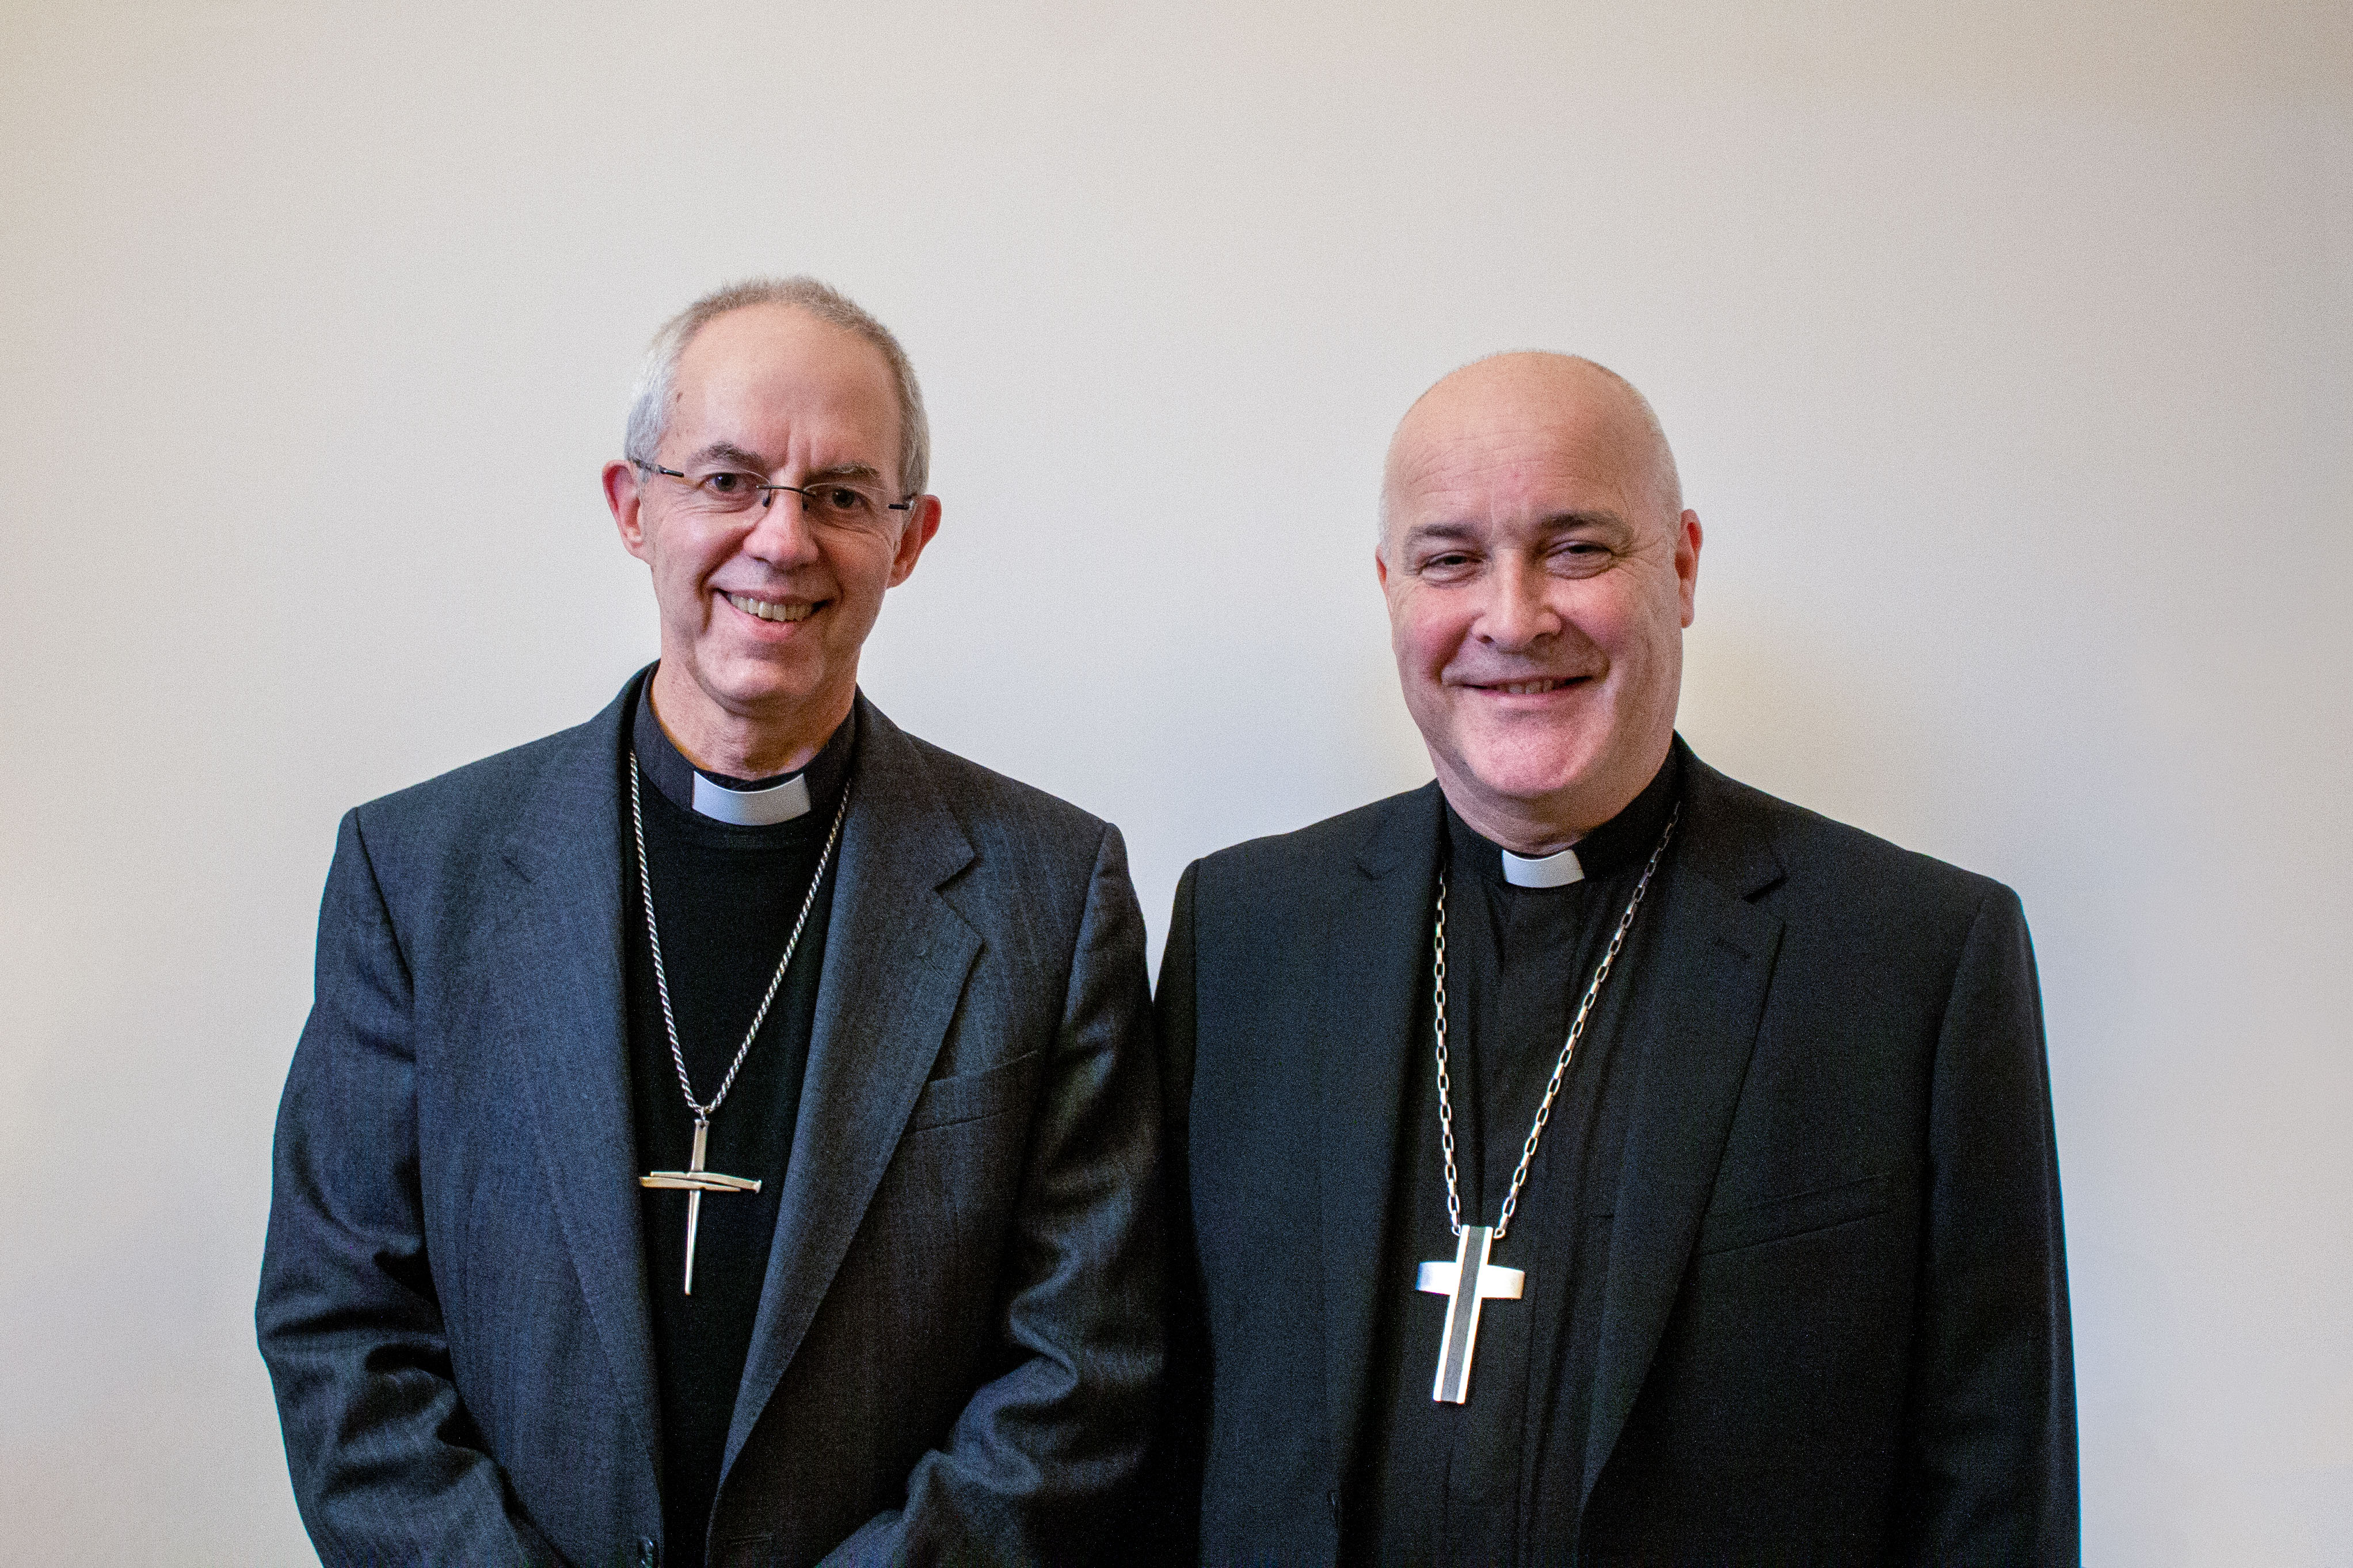 Bishop Stephen Cottrell to be the next Archbishop of York